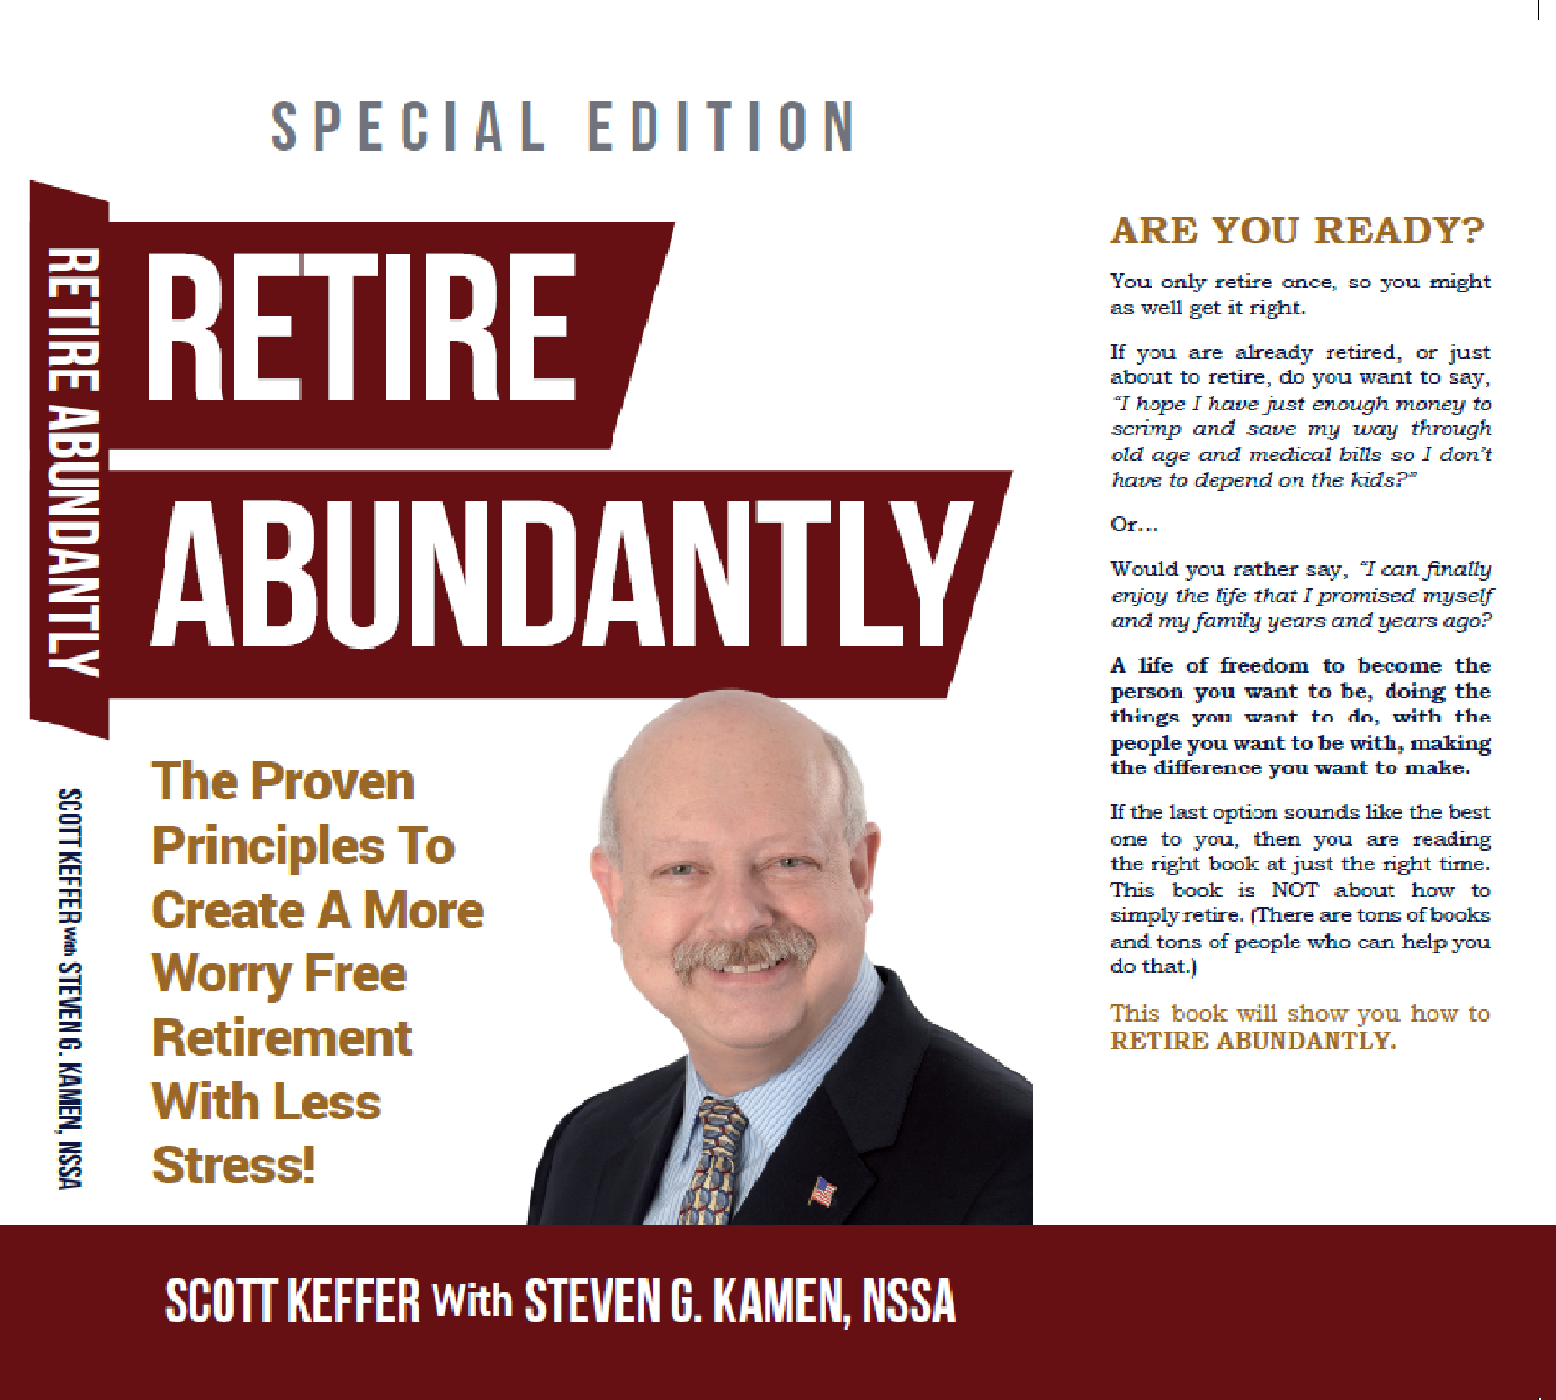 Retire Abundantly - Check back to see how to get your own copy!